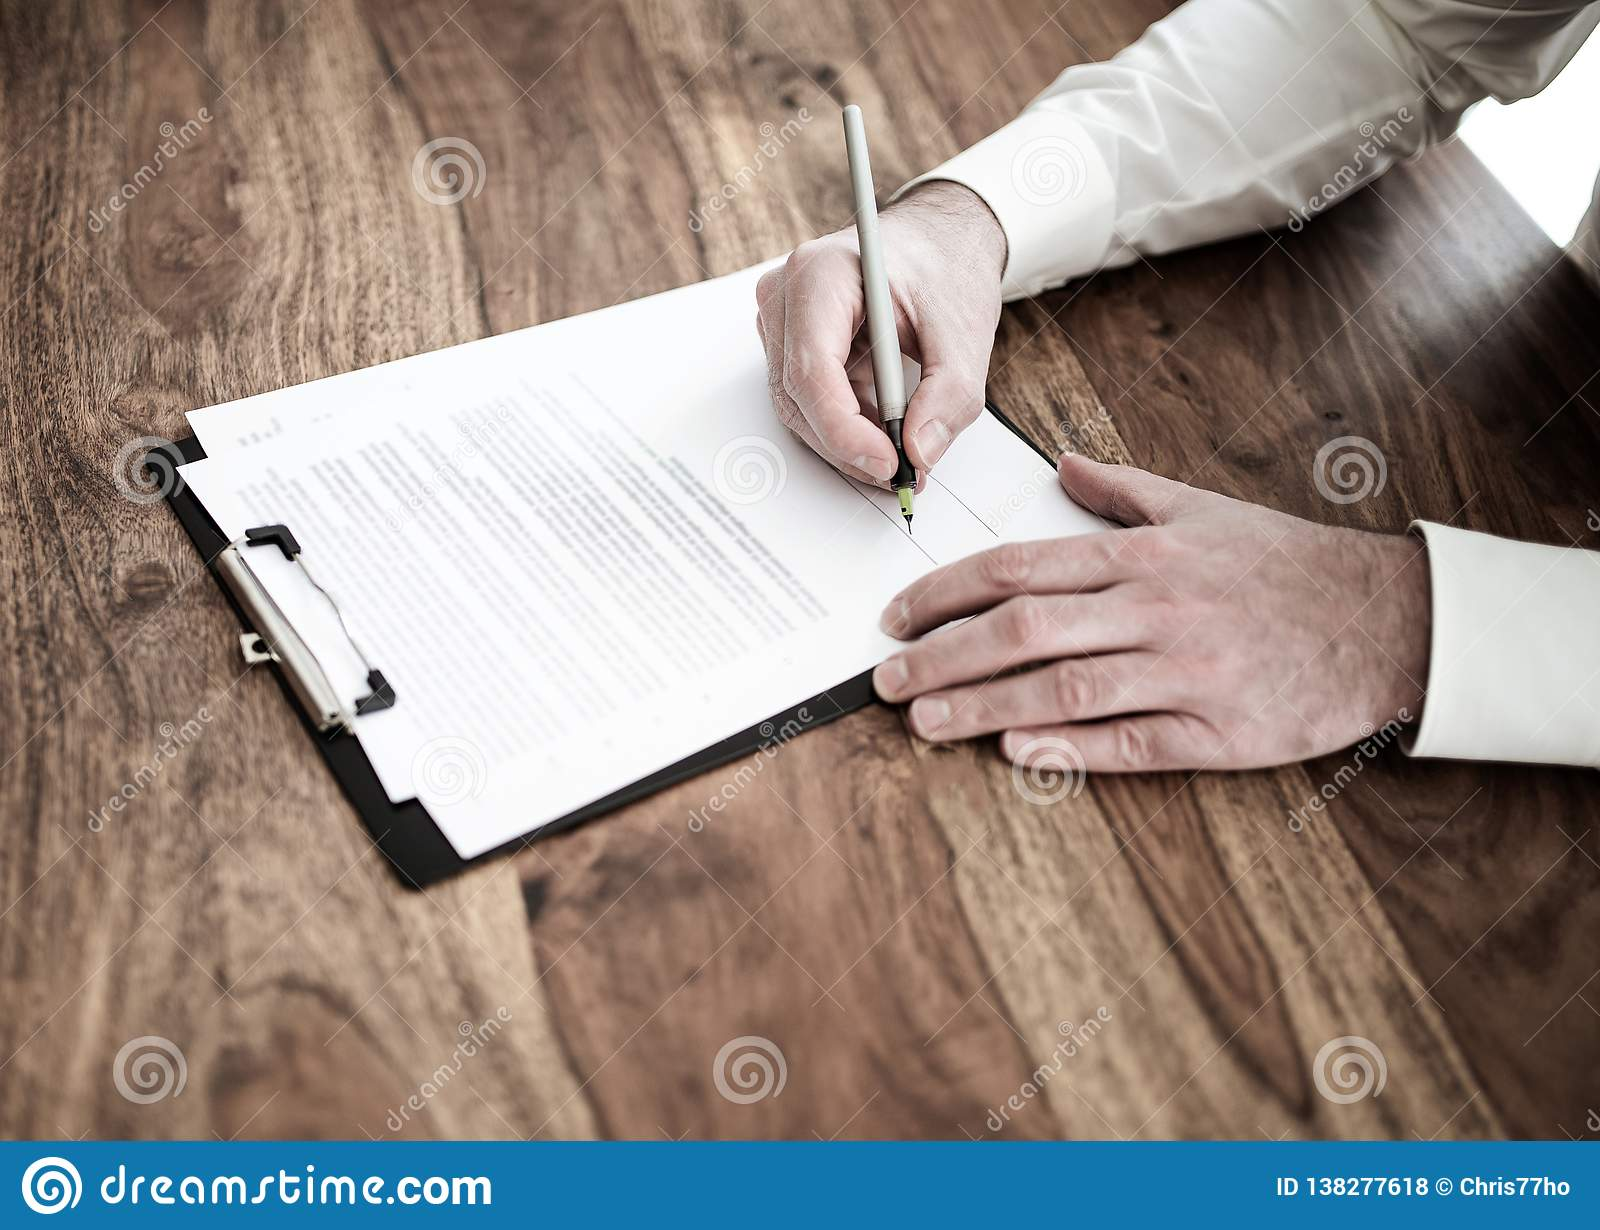 Man signing contract or document at wooden desk